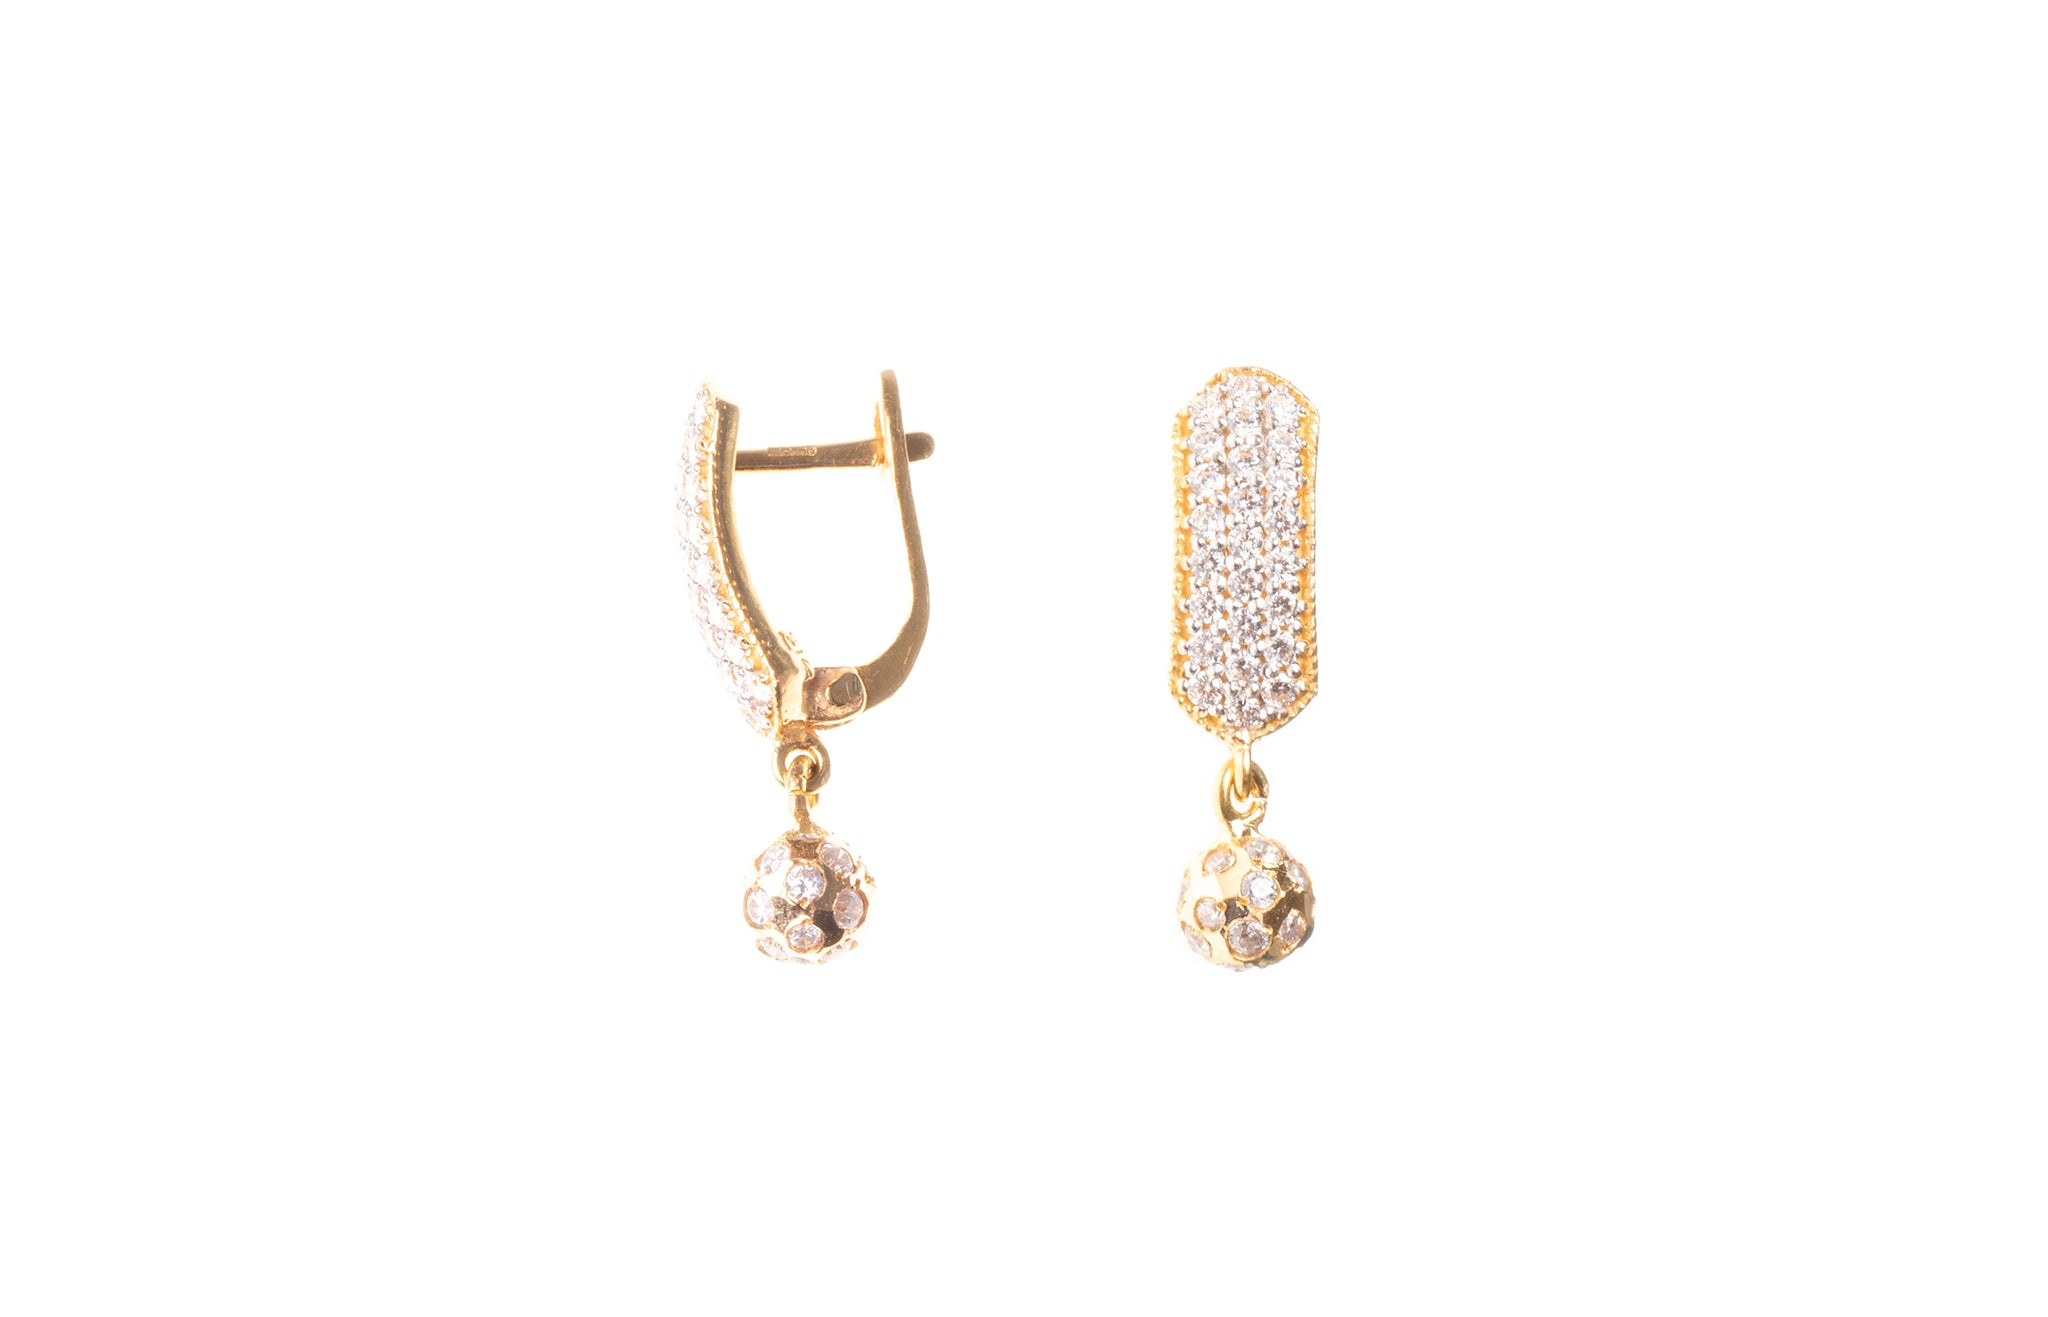 22ct Gold Cubic Zirconia Drop Hoop Earrings (4.9g) E-7864